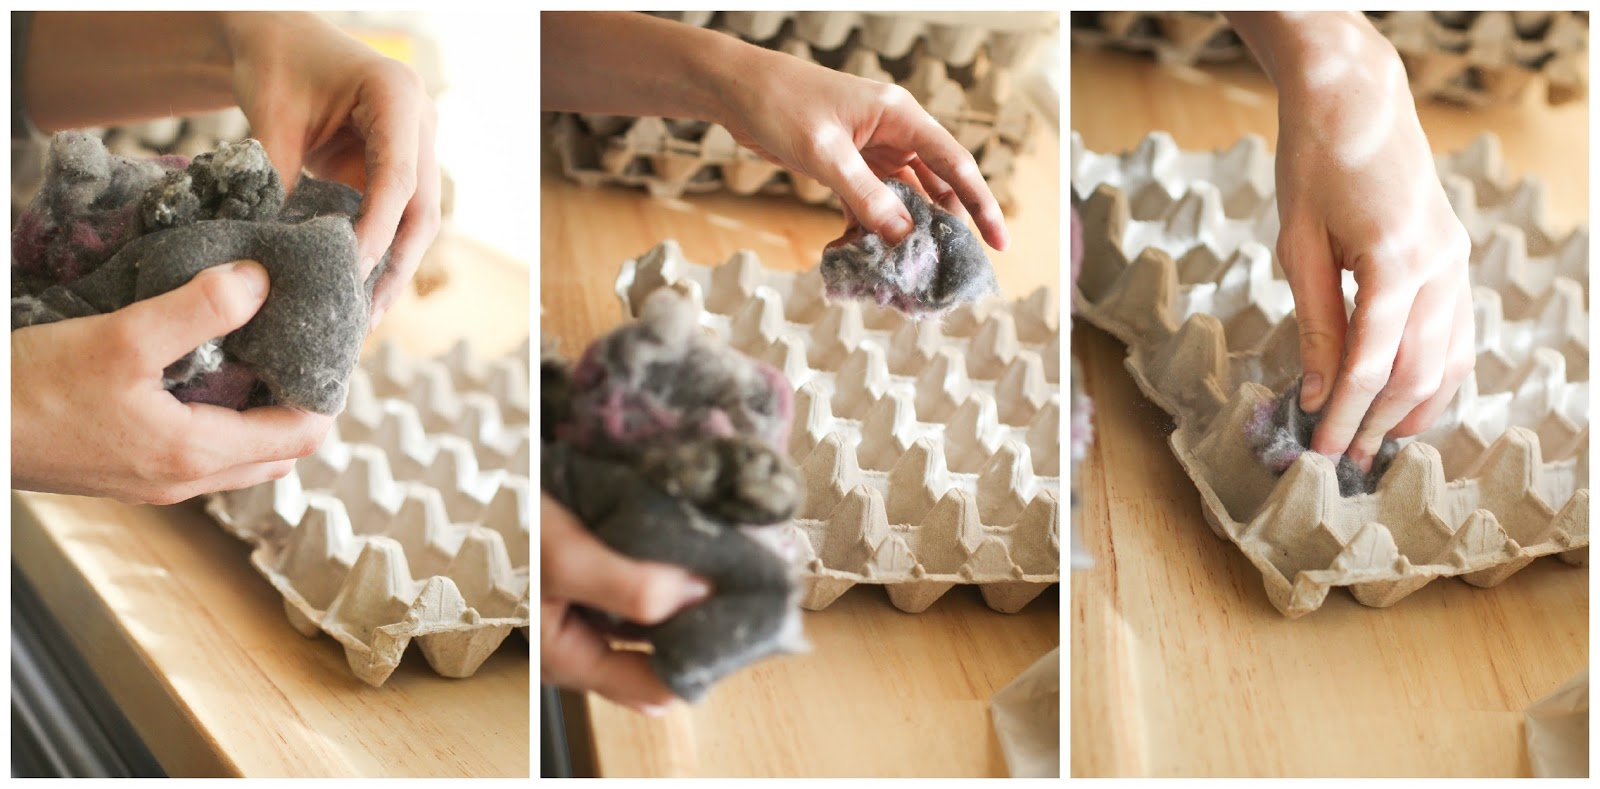 How To Make Handmade Home Decor Items The Freckled Fox Diy Homemade Fire Starters With All